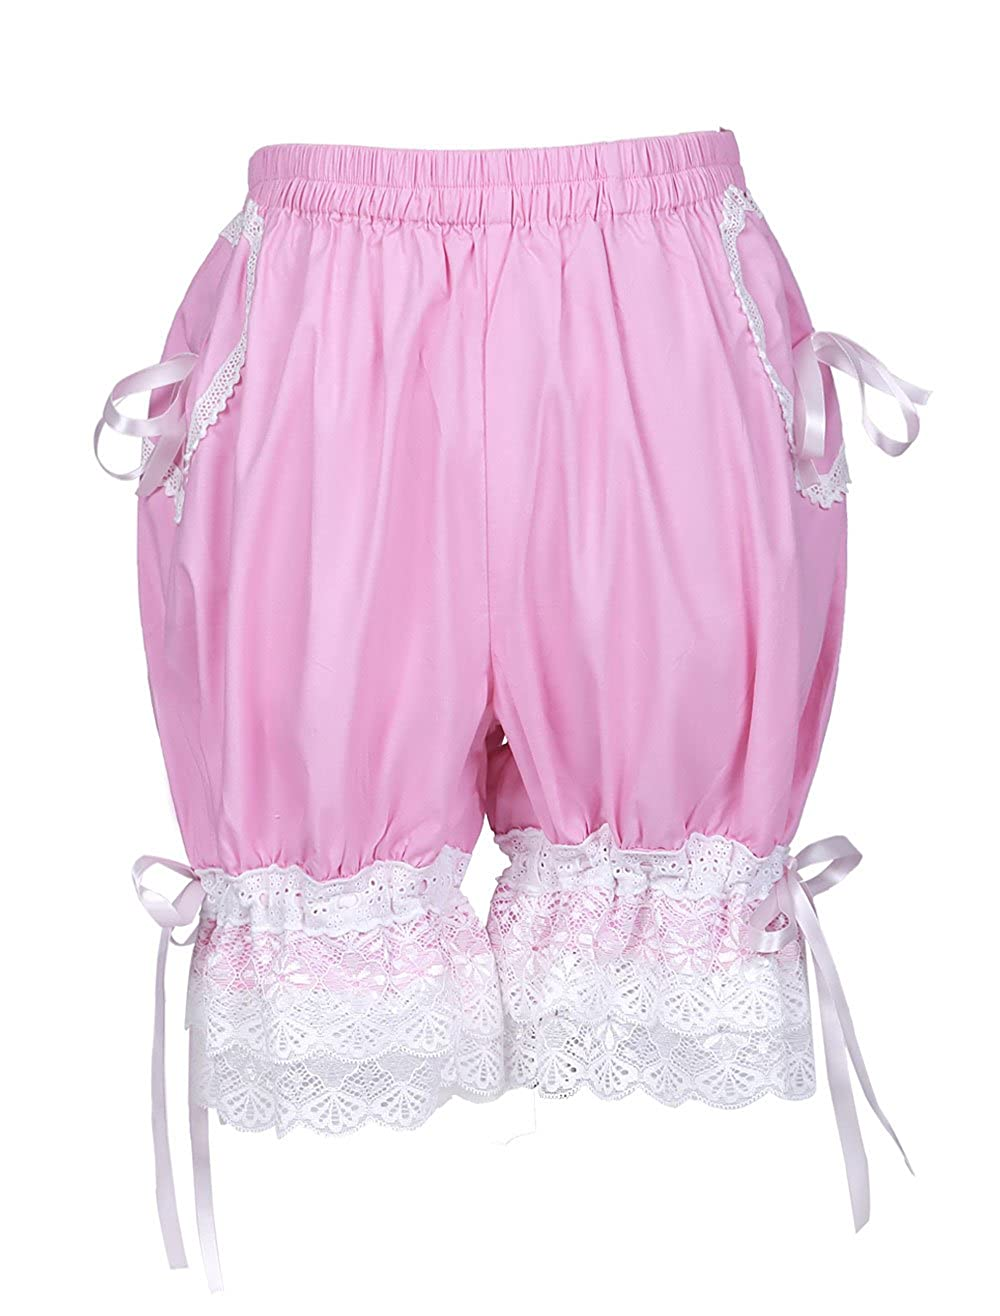 Trendareus Women's Cotton Candy Color Lolita Pumpkin Shorts Bloomers